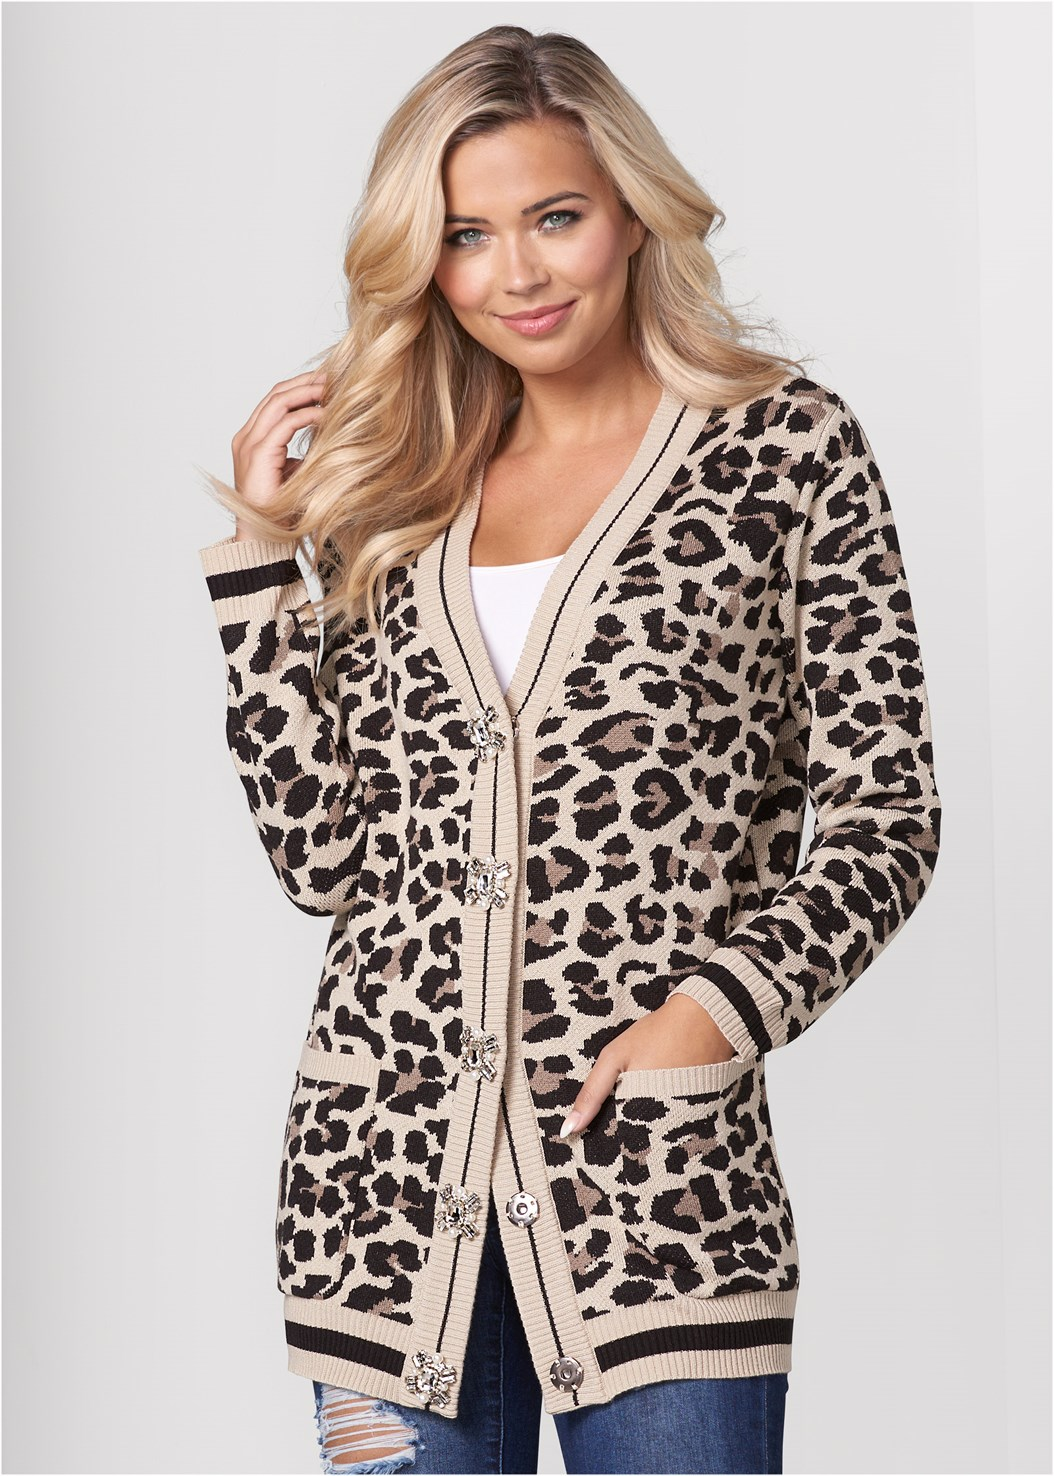 Leopard Cardigan,Basic Cami Two Pack,Ripped Bum Lifter Jeans,Cage Contour Bra,Buckle Detail Booties,Fringe Scarf